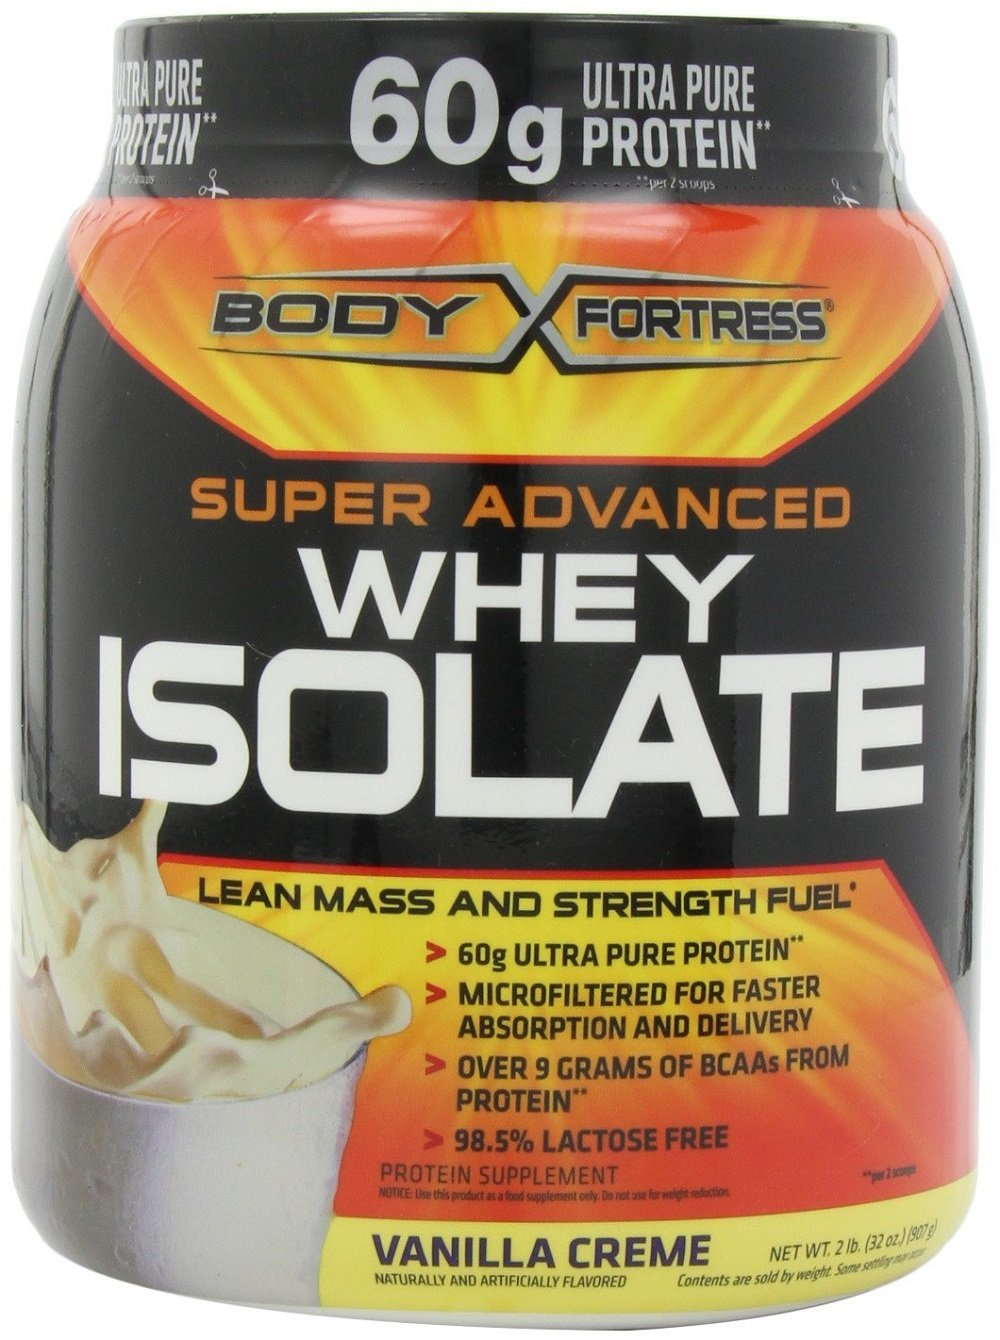 whey protien Whey protein powder and whey protein shakes from high quality whey protein isolate in many flavors from eas, all max nutrition, bioplex, cytosport, metrx and more from all star health.